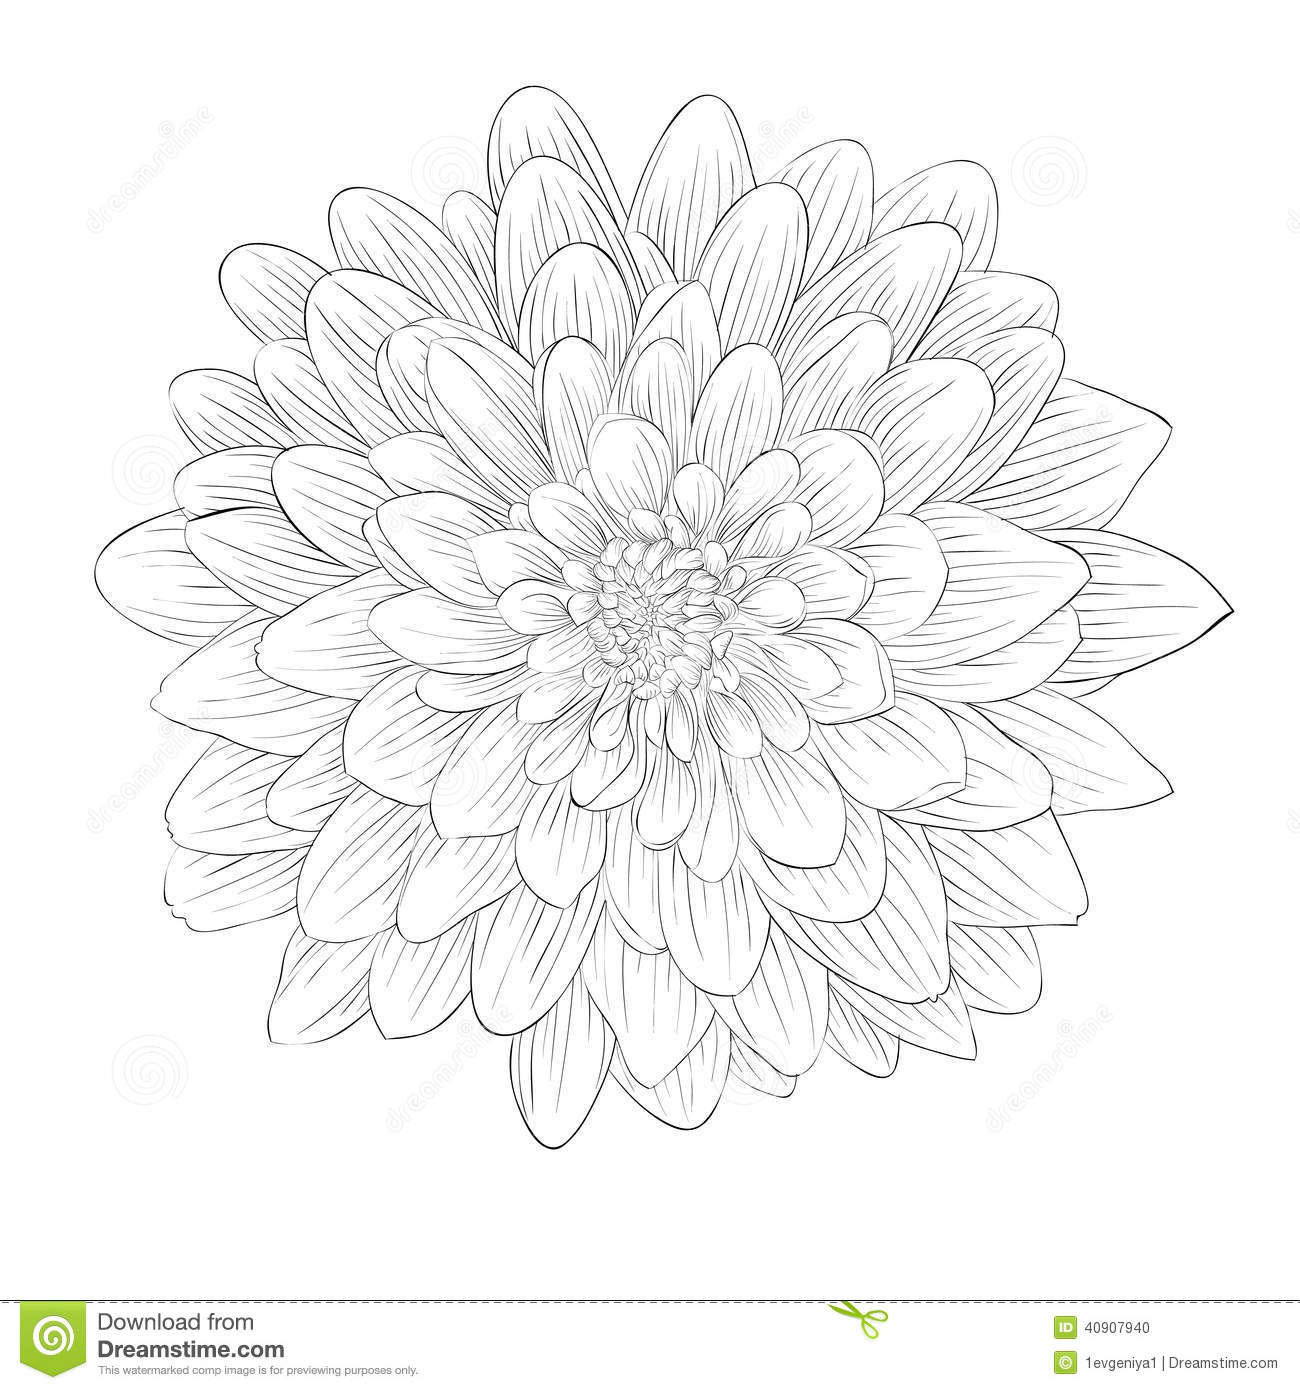 Monochrome Black And White Dahlia Flower Isolated On White Background